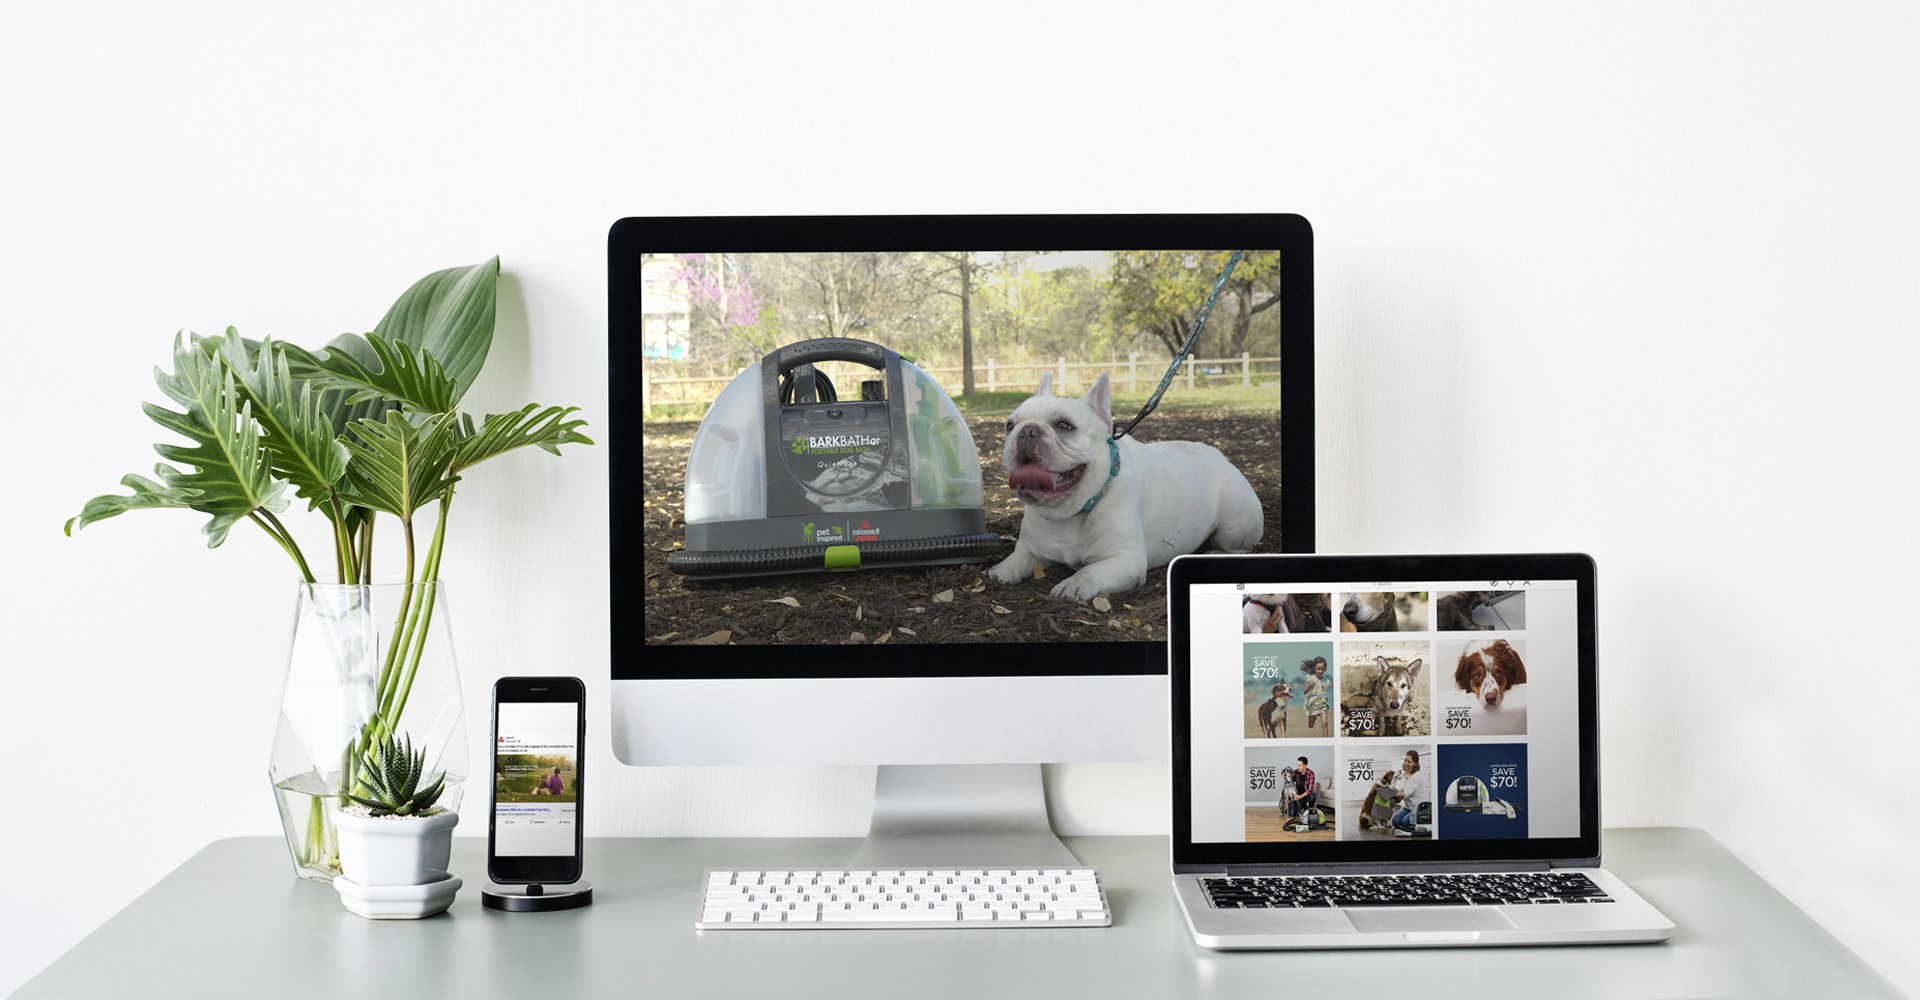 BISSELL BARKBATH™ Product Launch Campaign banner image by Blue Flame Thinking